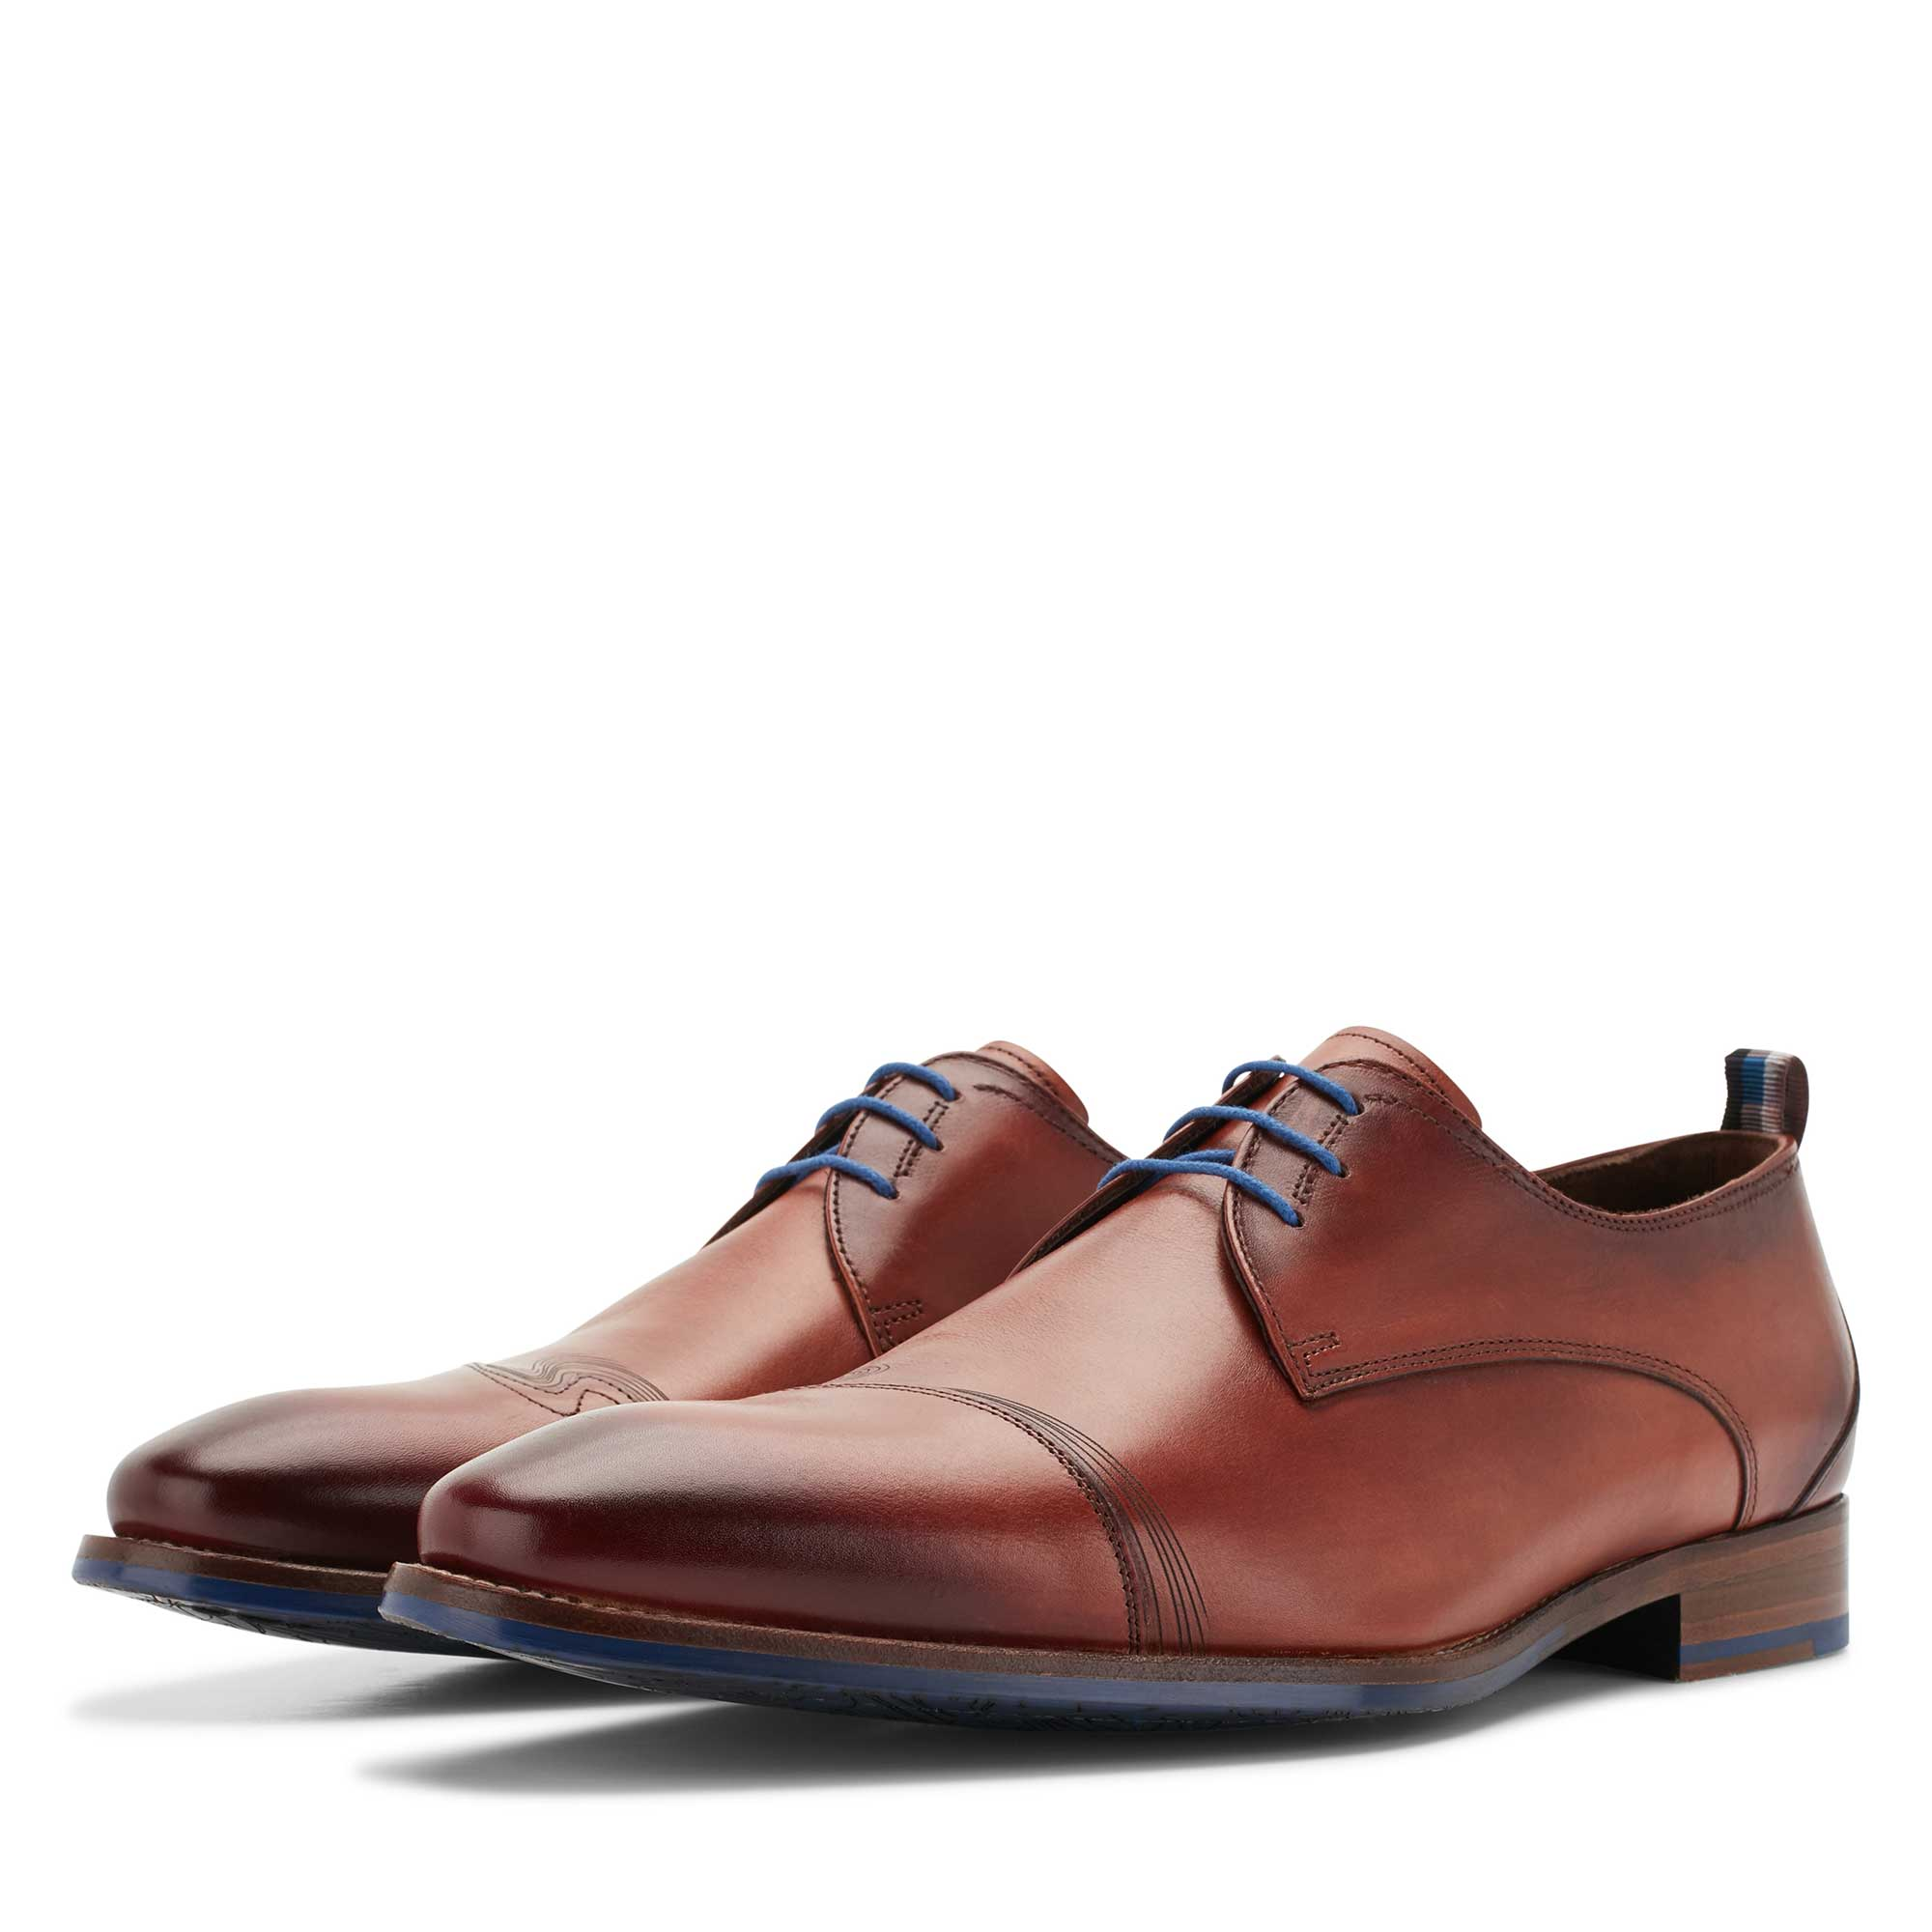 18006/00 - Cognac-coloured leather lace shoe